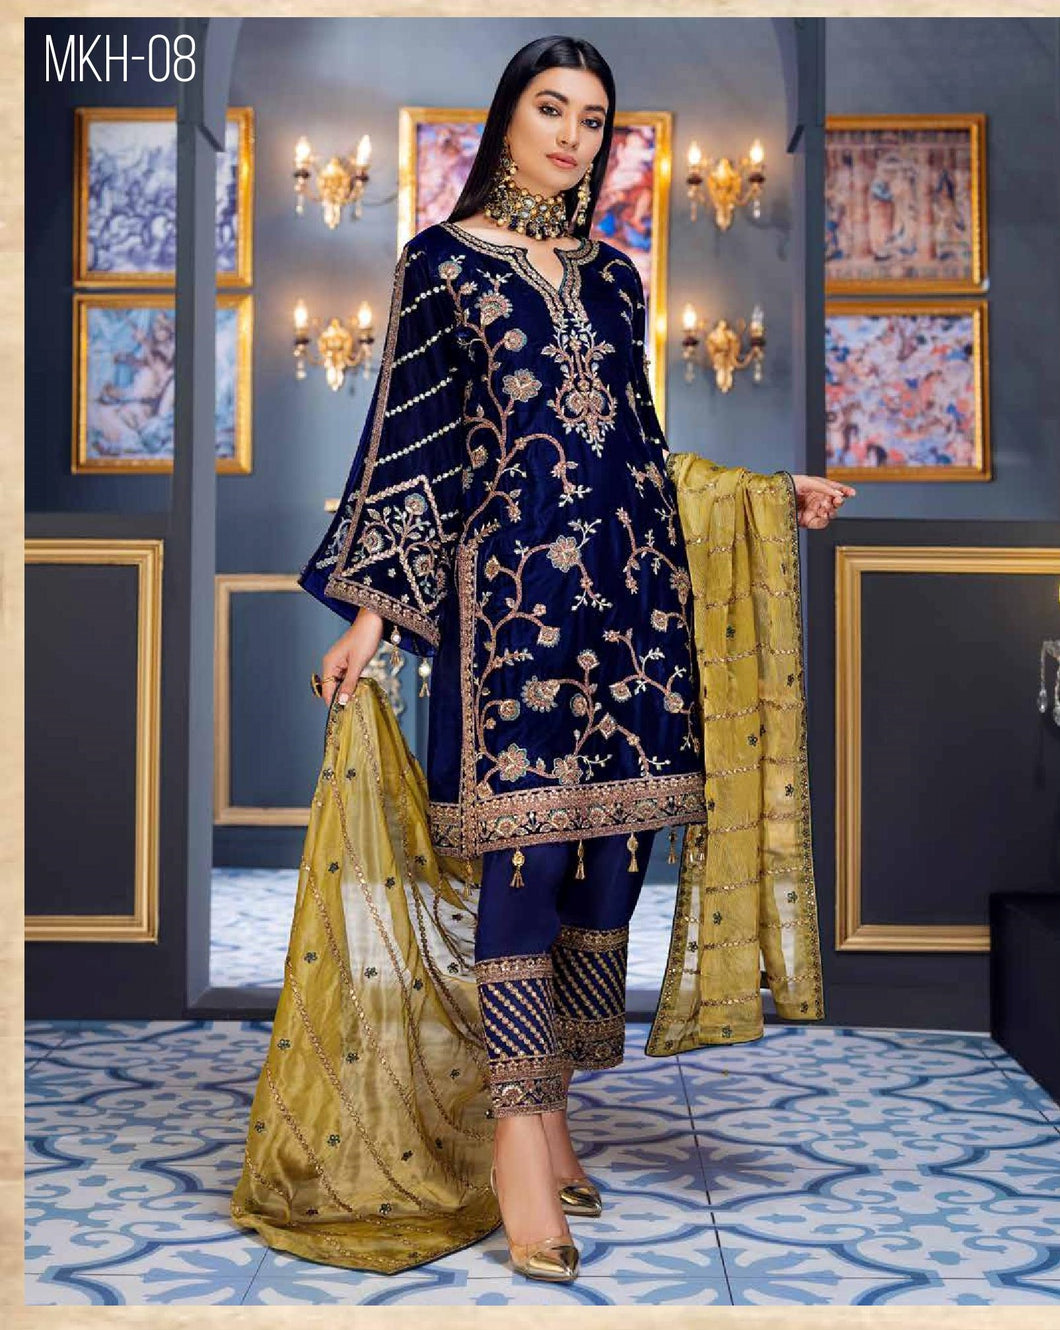 EMAAN ADEEL | Velvet Winter  Collection 2020-MKH08